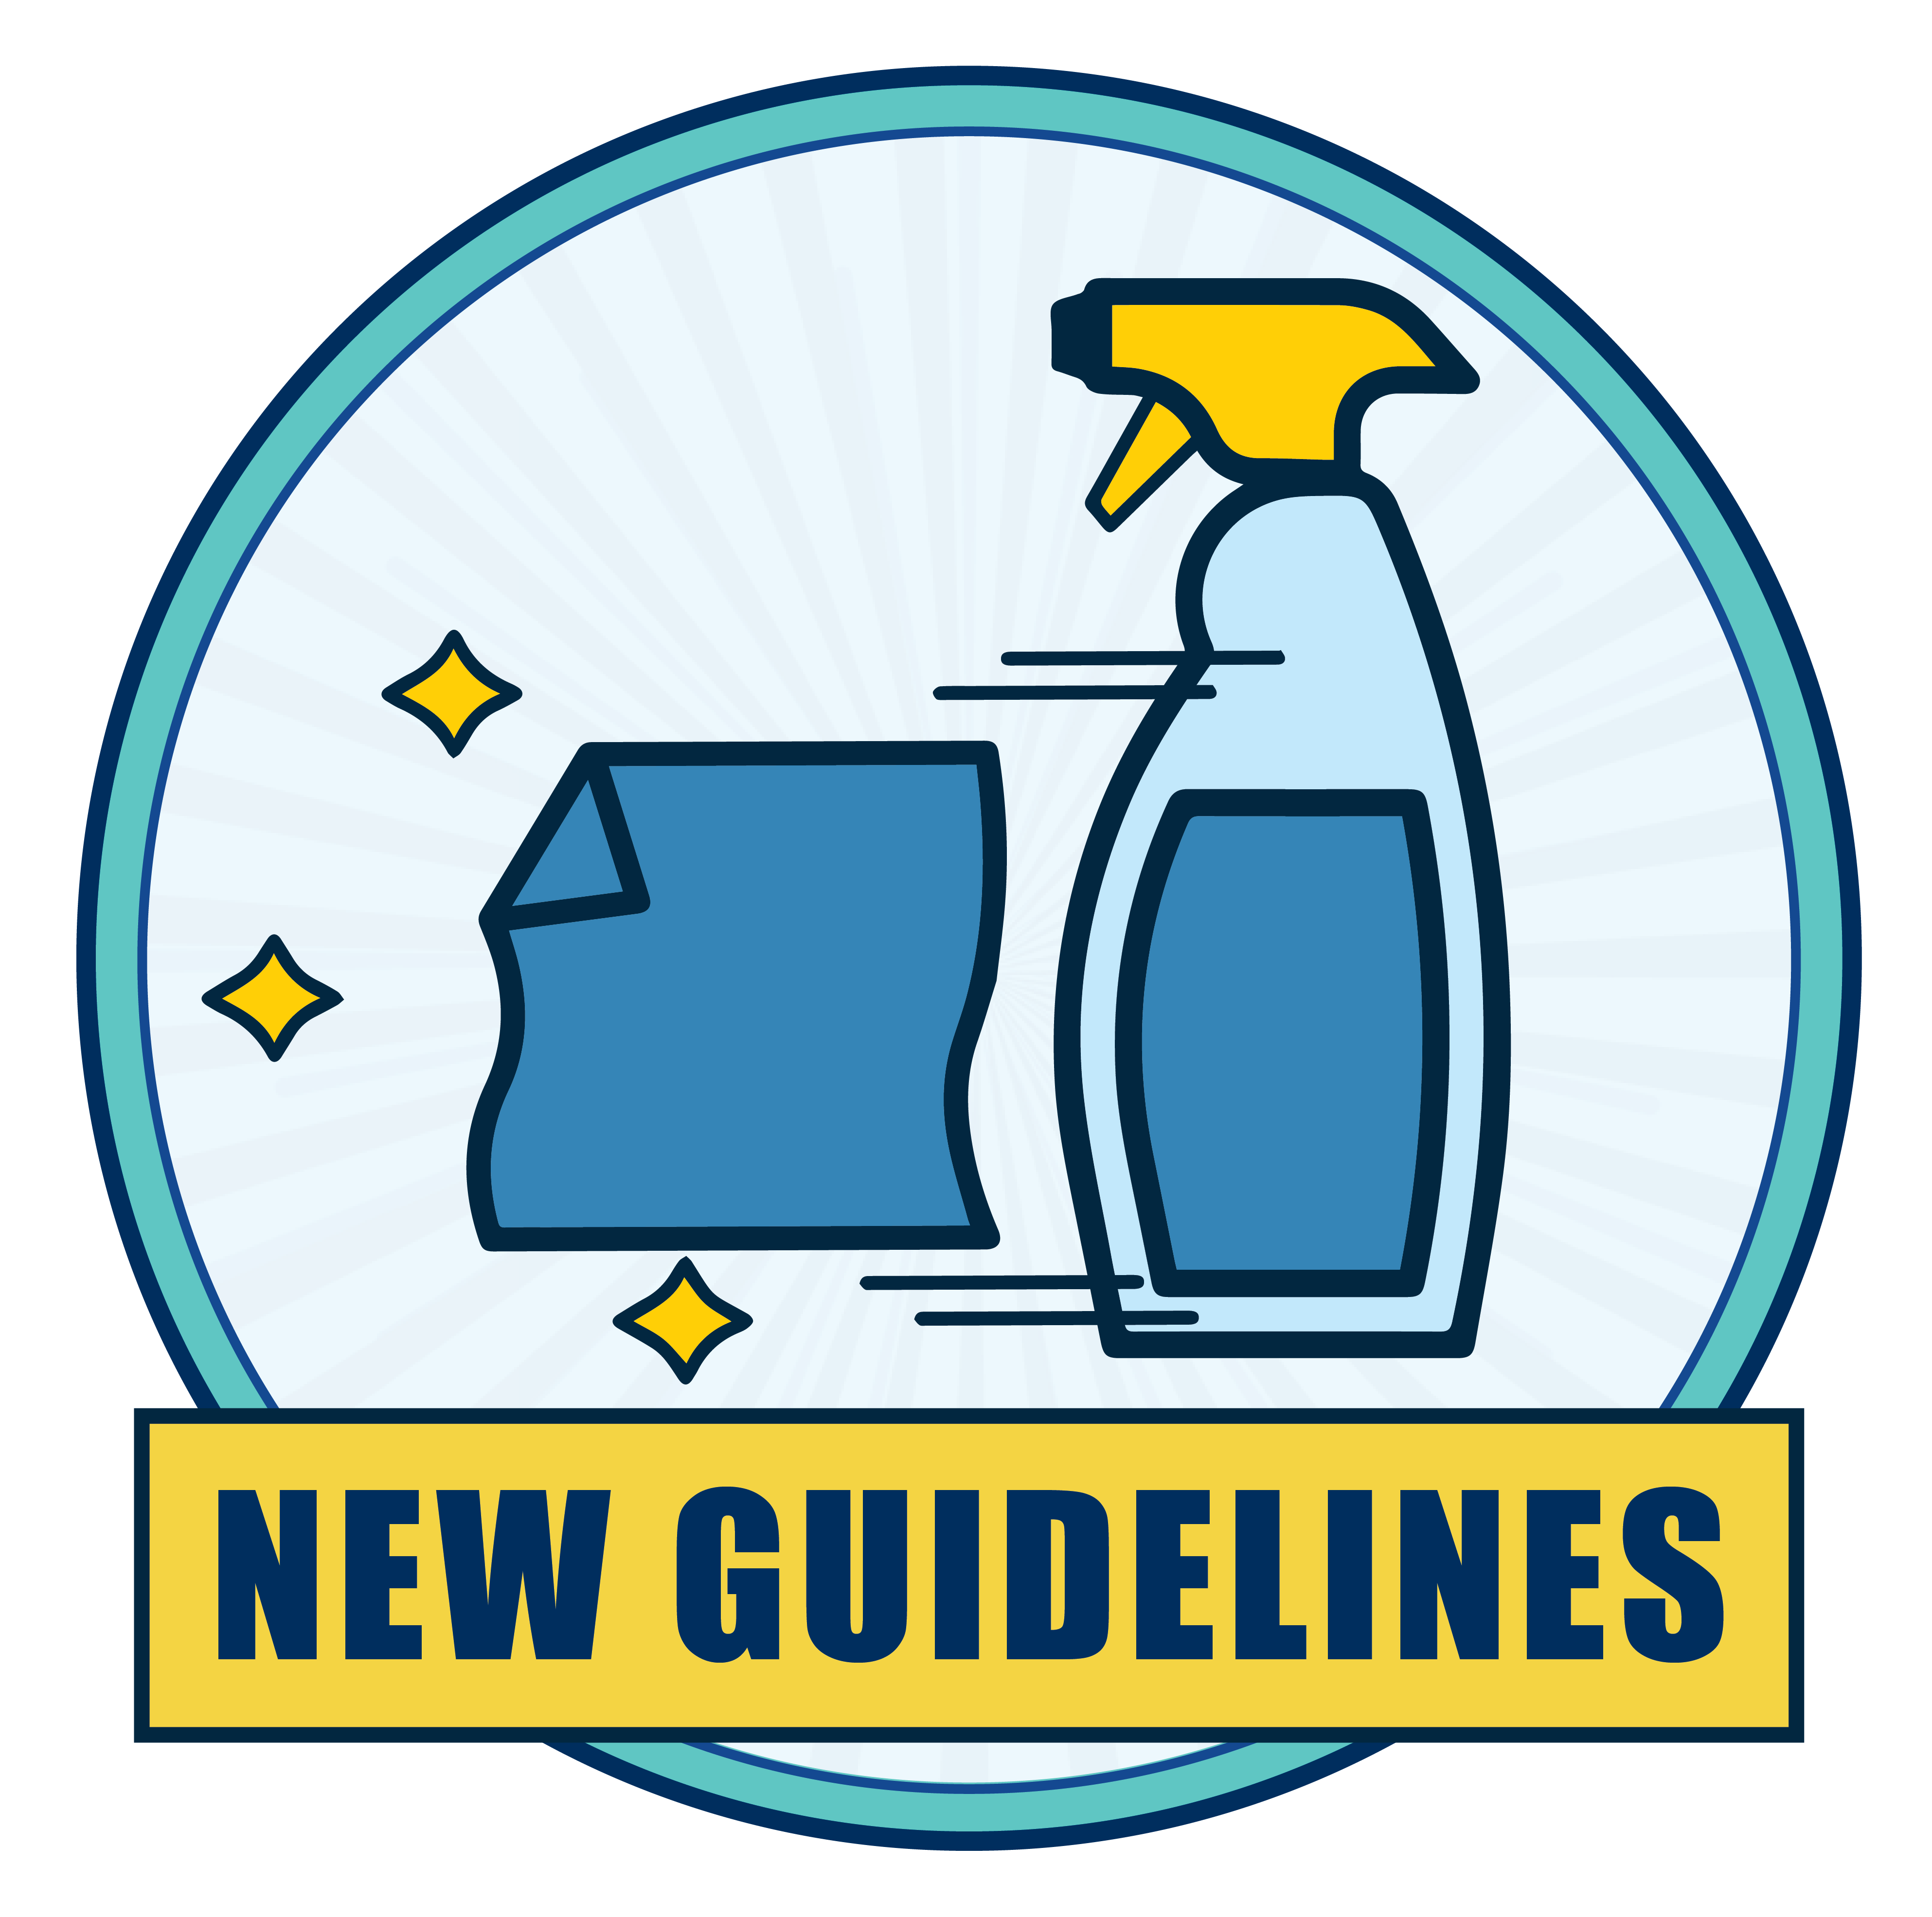 New Sanitization Guidelines icon